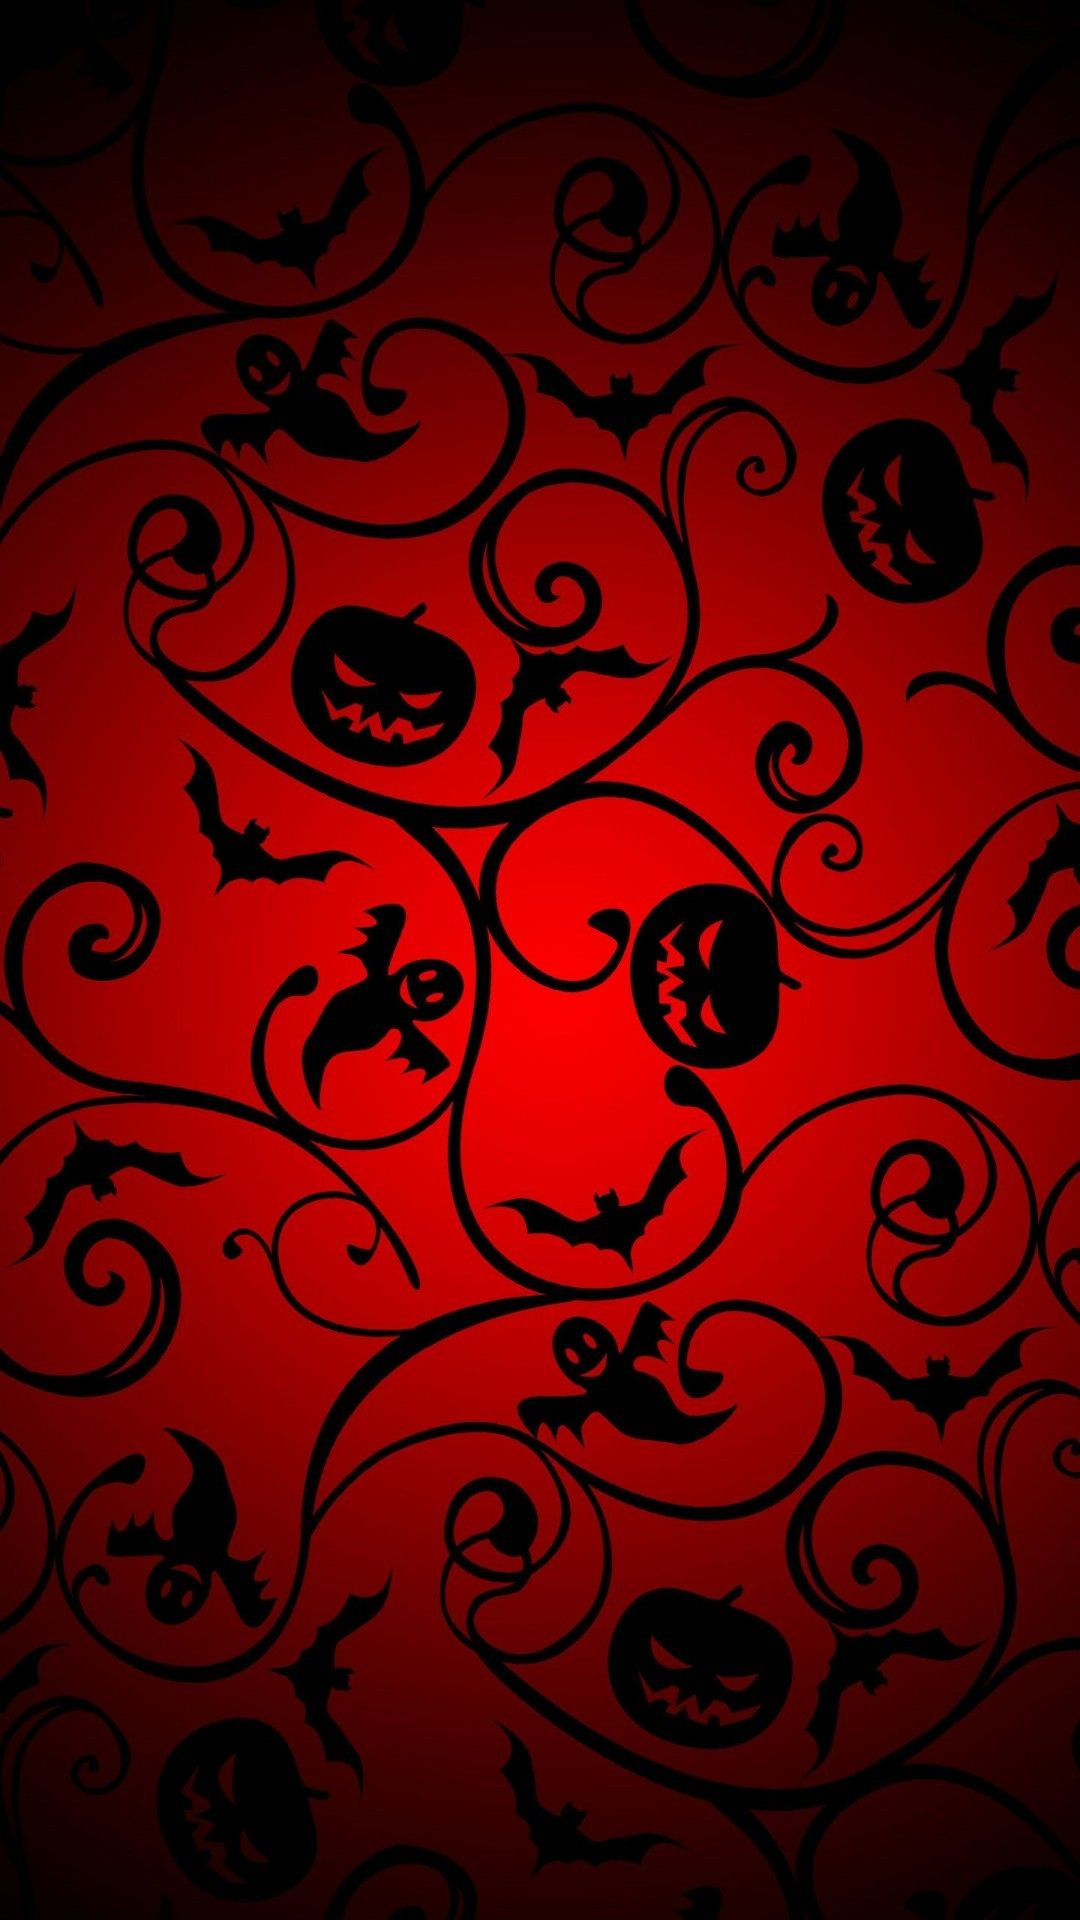 1080x1920 Halloween Wallpapers For Android Mobiles - Free Printable ...